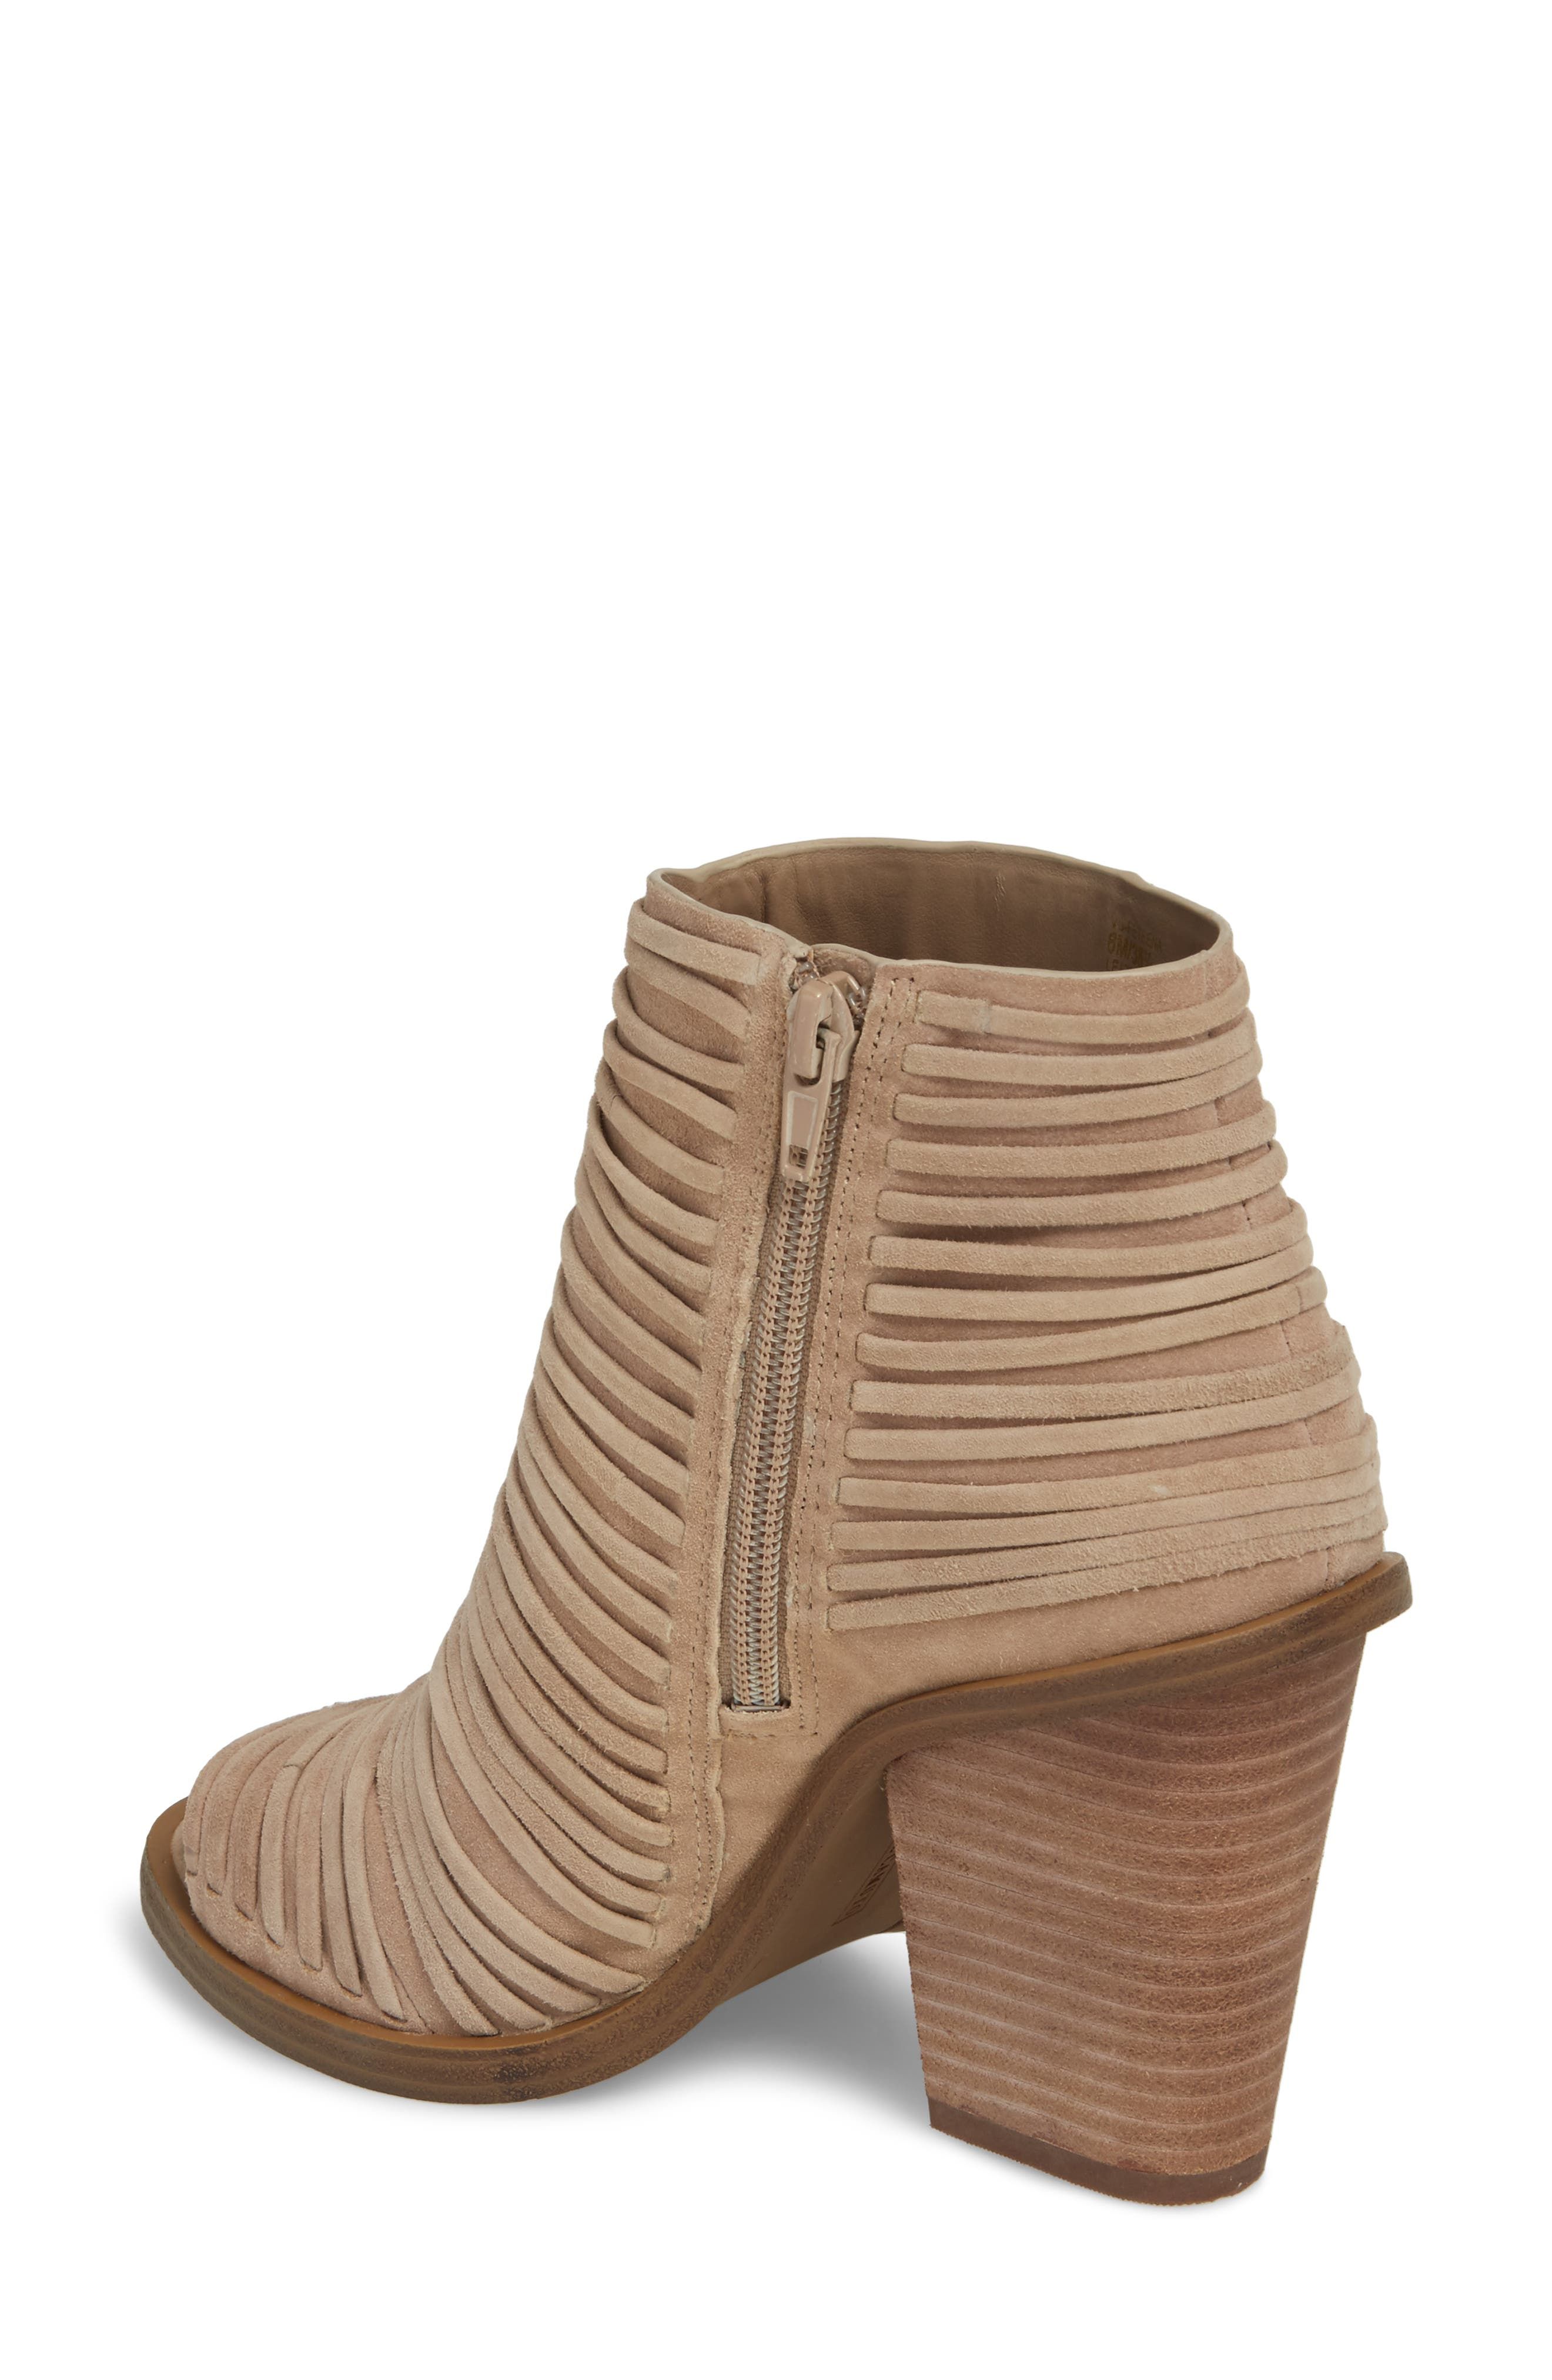 Feteena Bootie,                             Alternate thumbnail 2, color,                             FRENCH TAUPE SUEDE